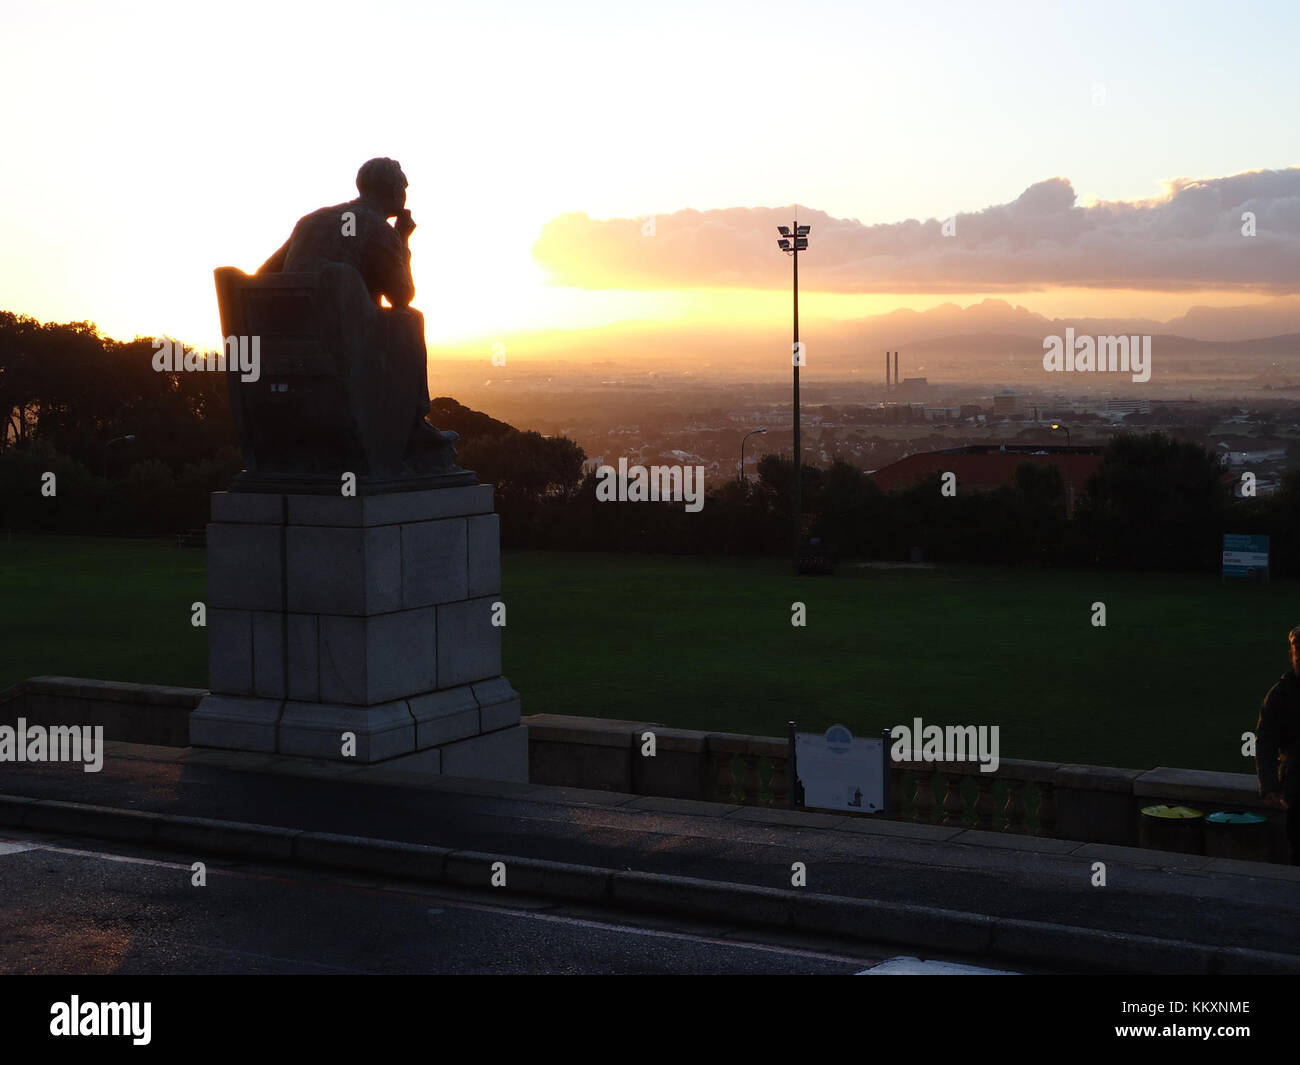 Cecil John Rhodes looking over Cape Town (7347447748) - Stock Image